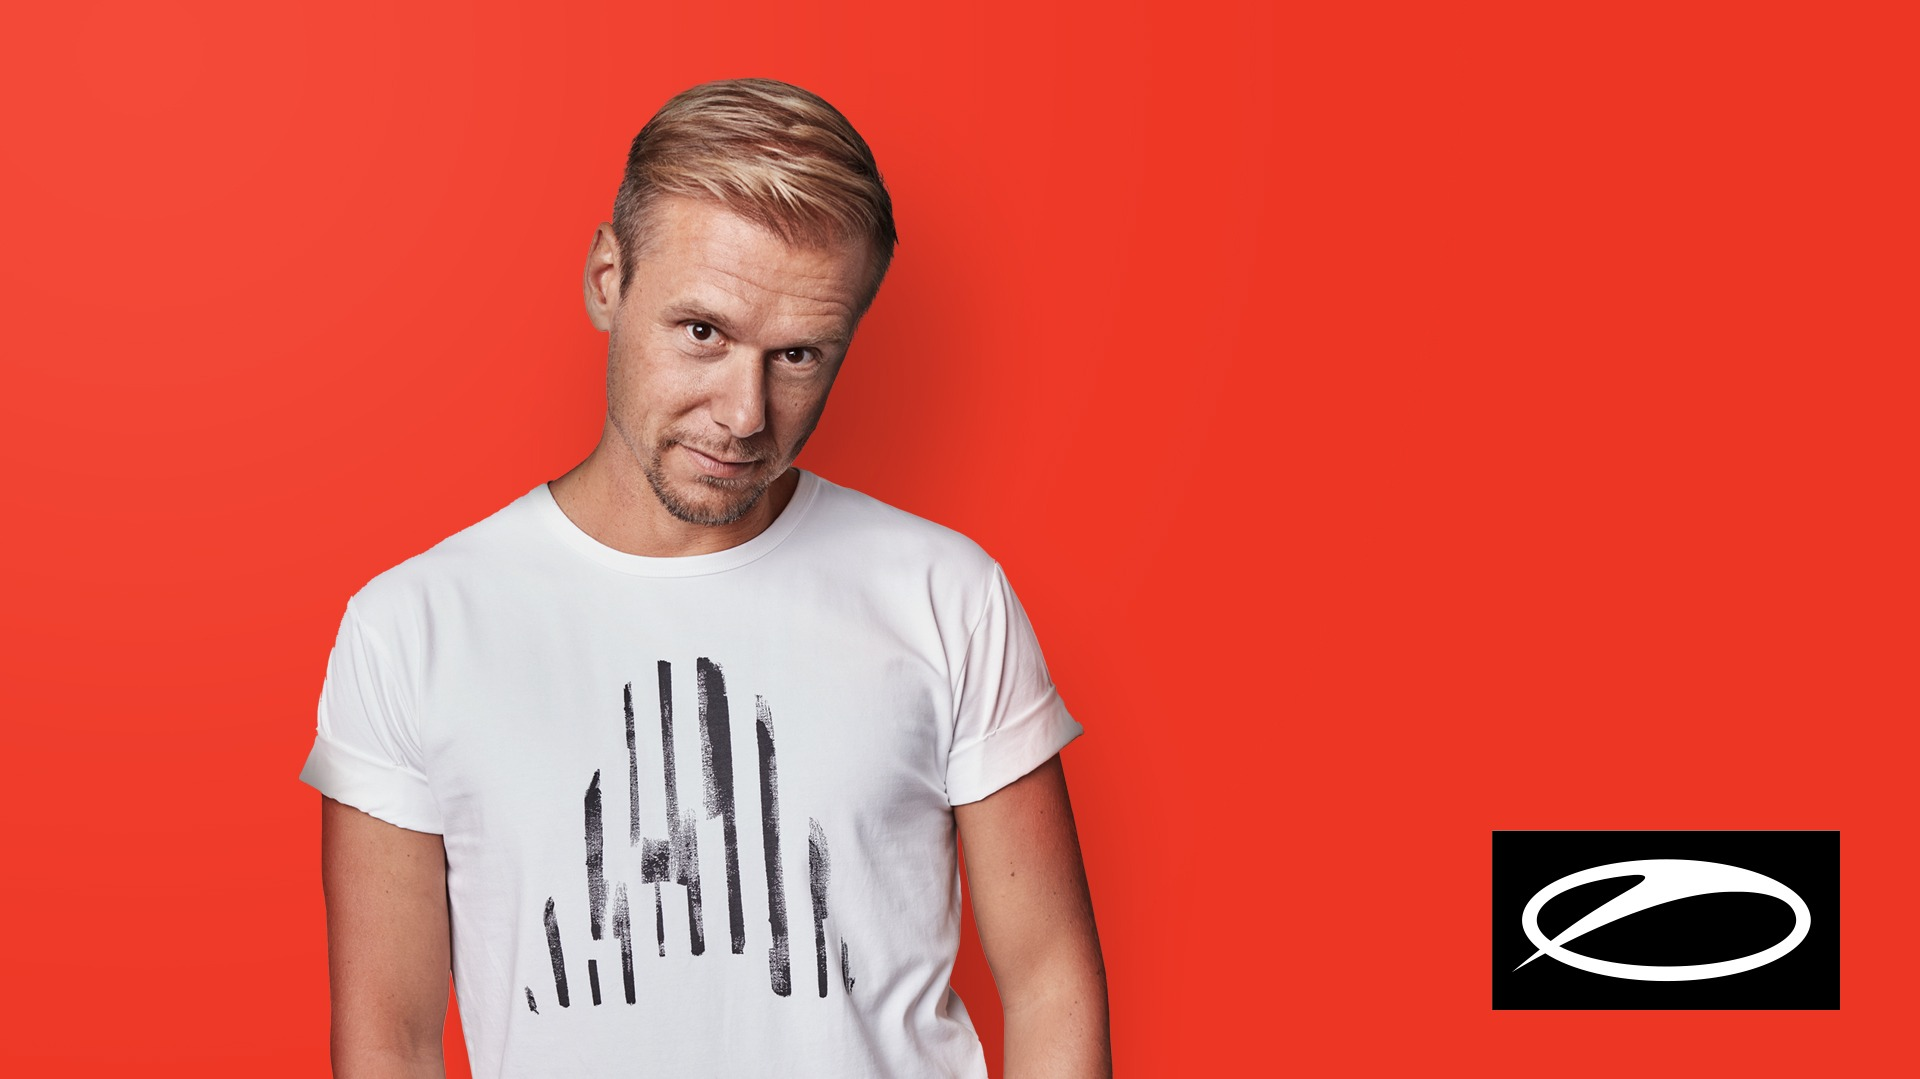 Asot header 1920x1080 new zonderkader